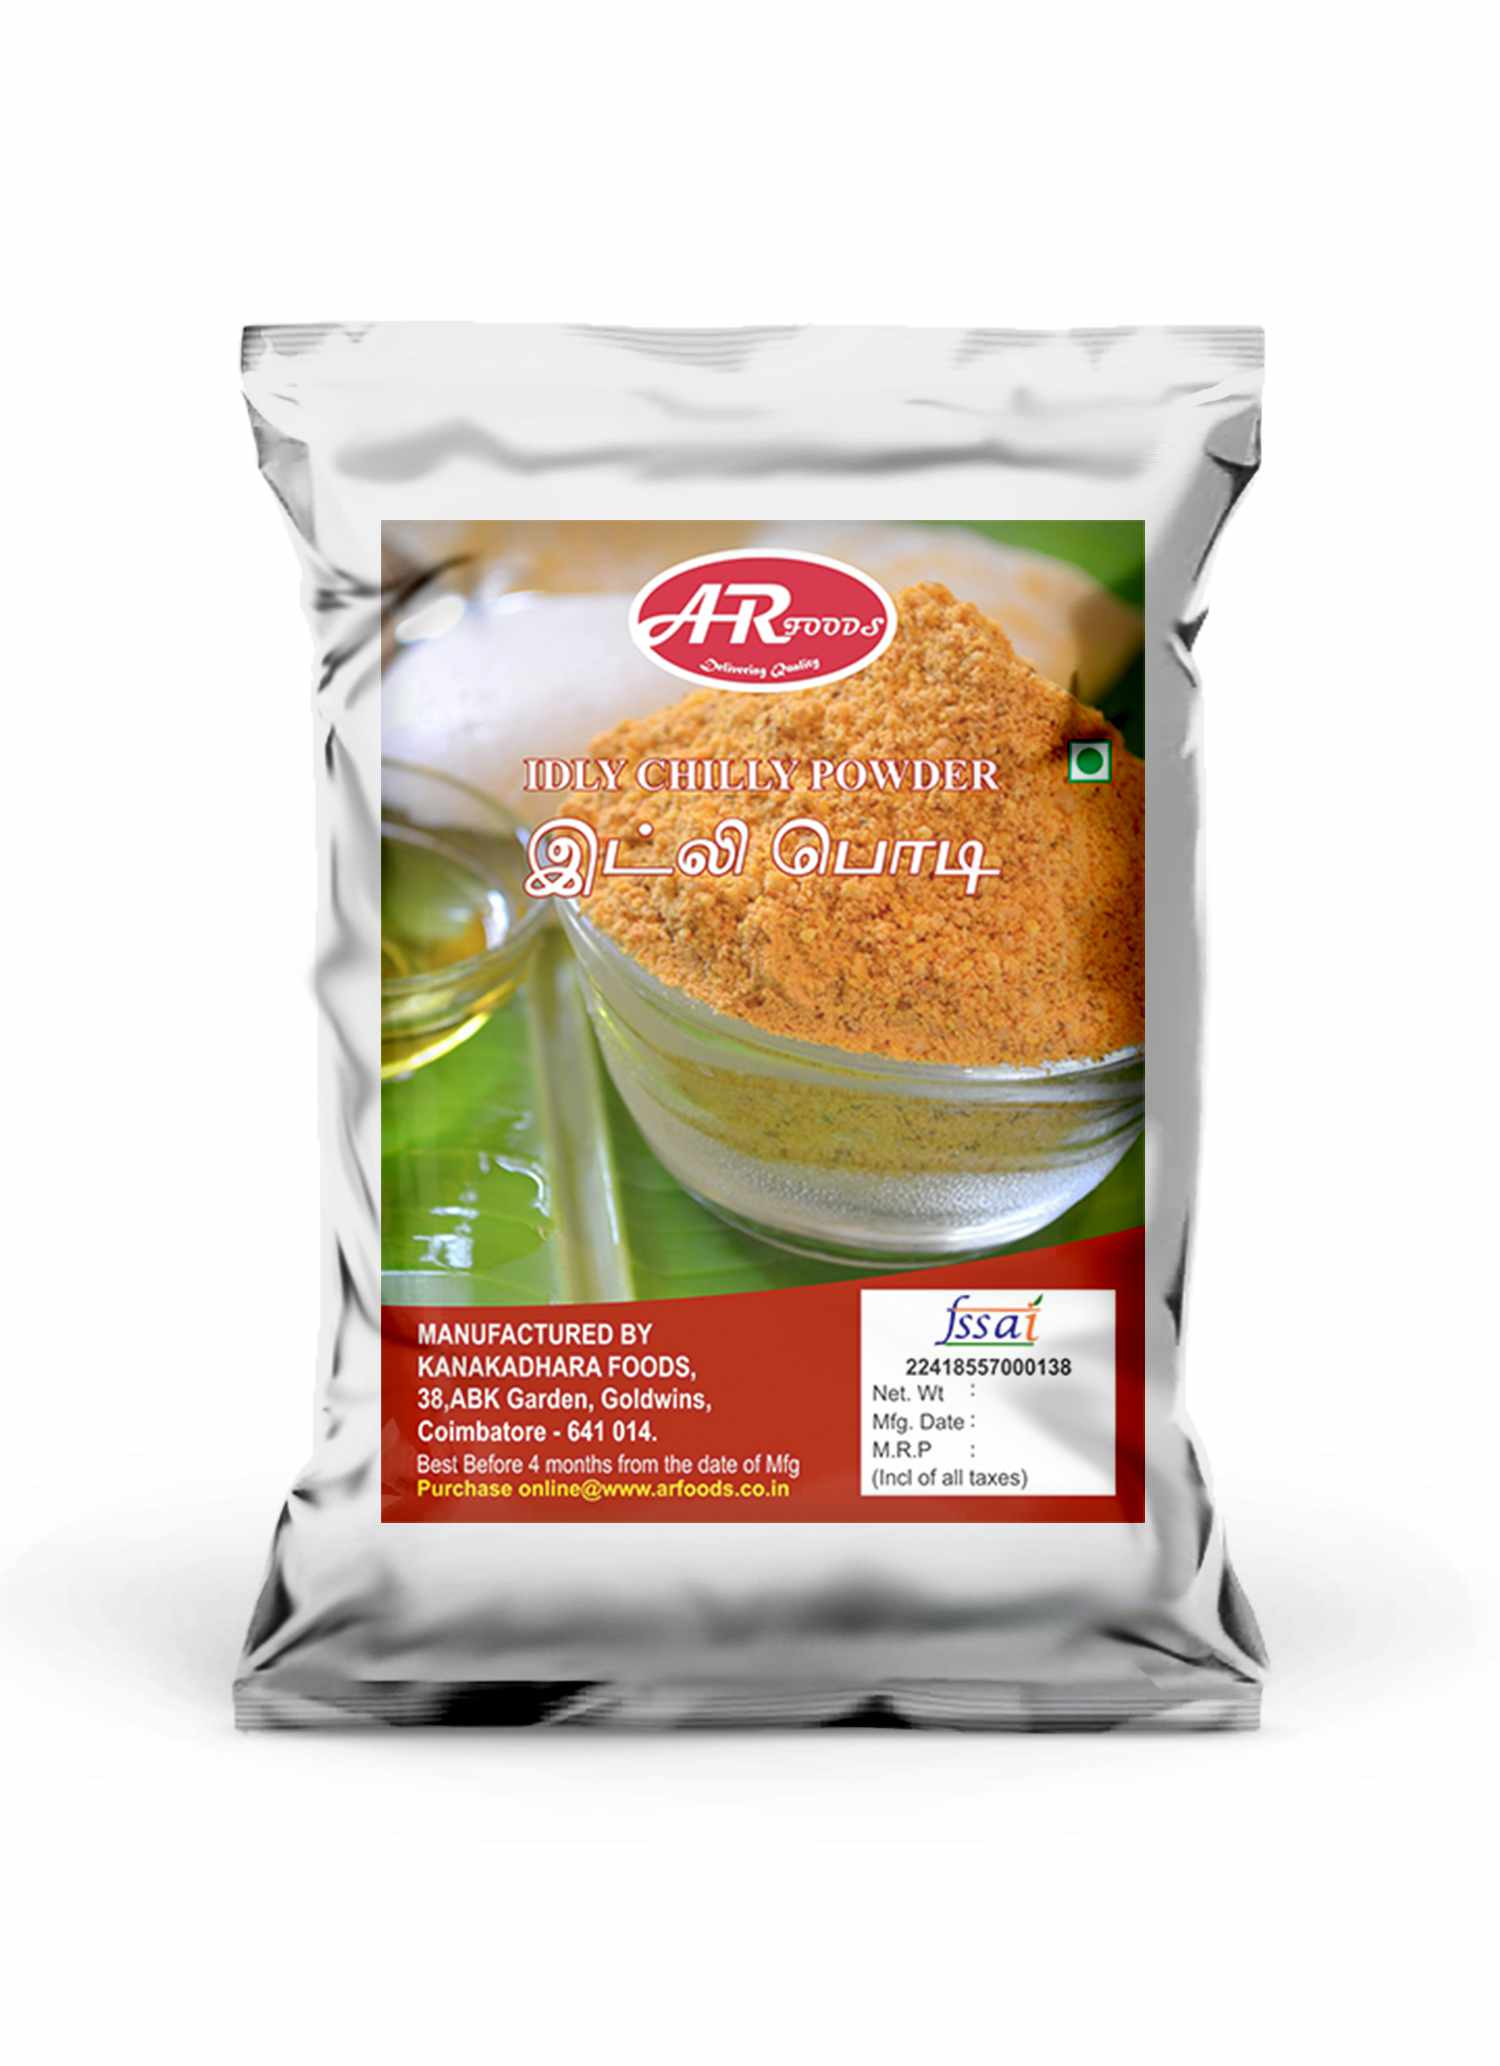 Idly powder_ar_foods_coimbatore